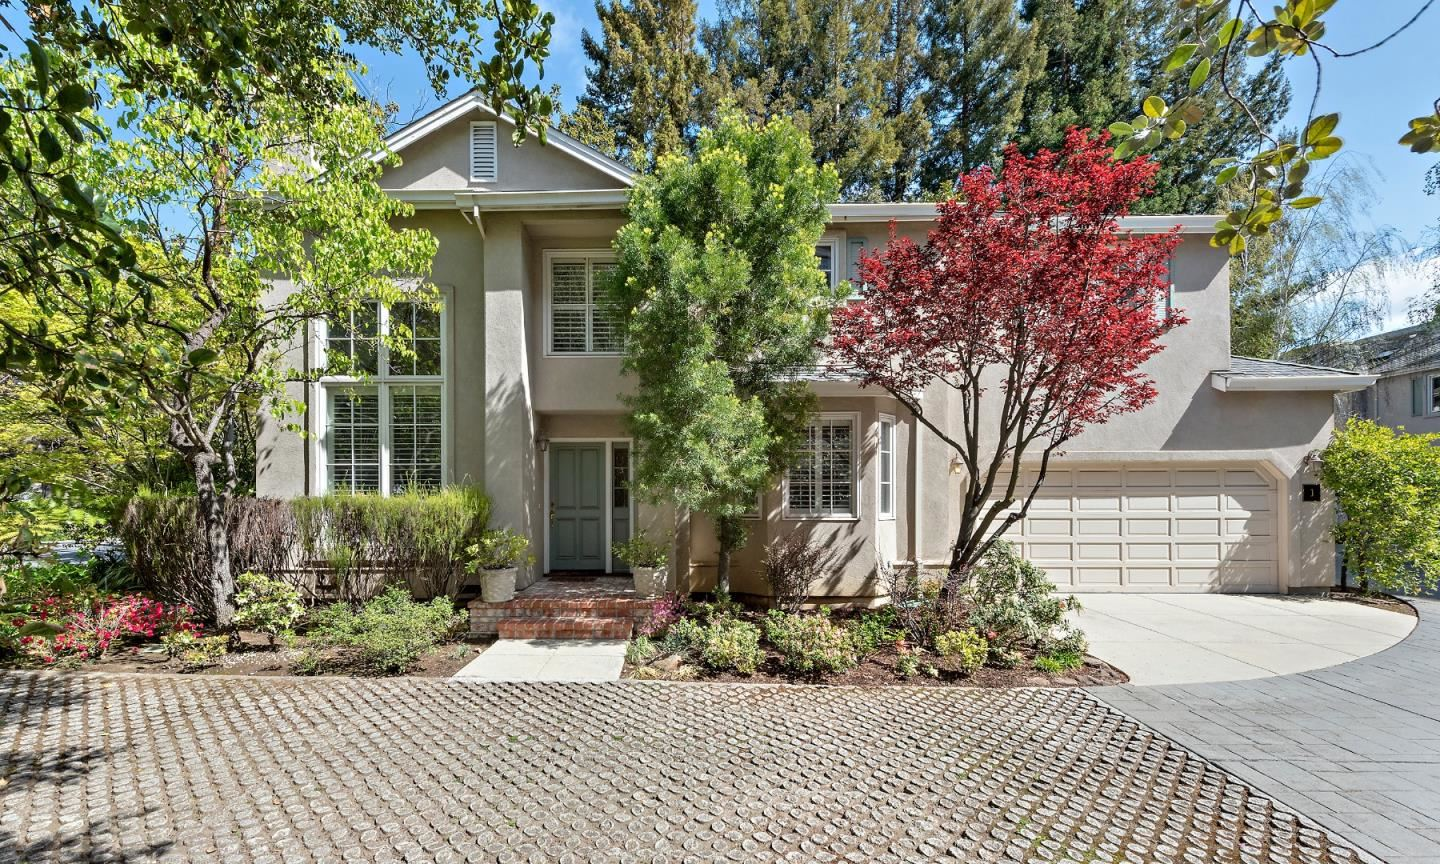 1 Daisy Lane, Menlo Park, CA 94025 - #: ML81836044